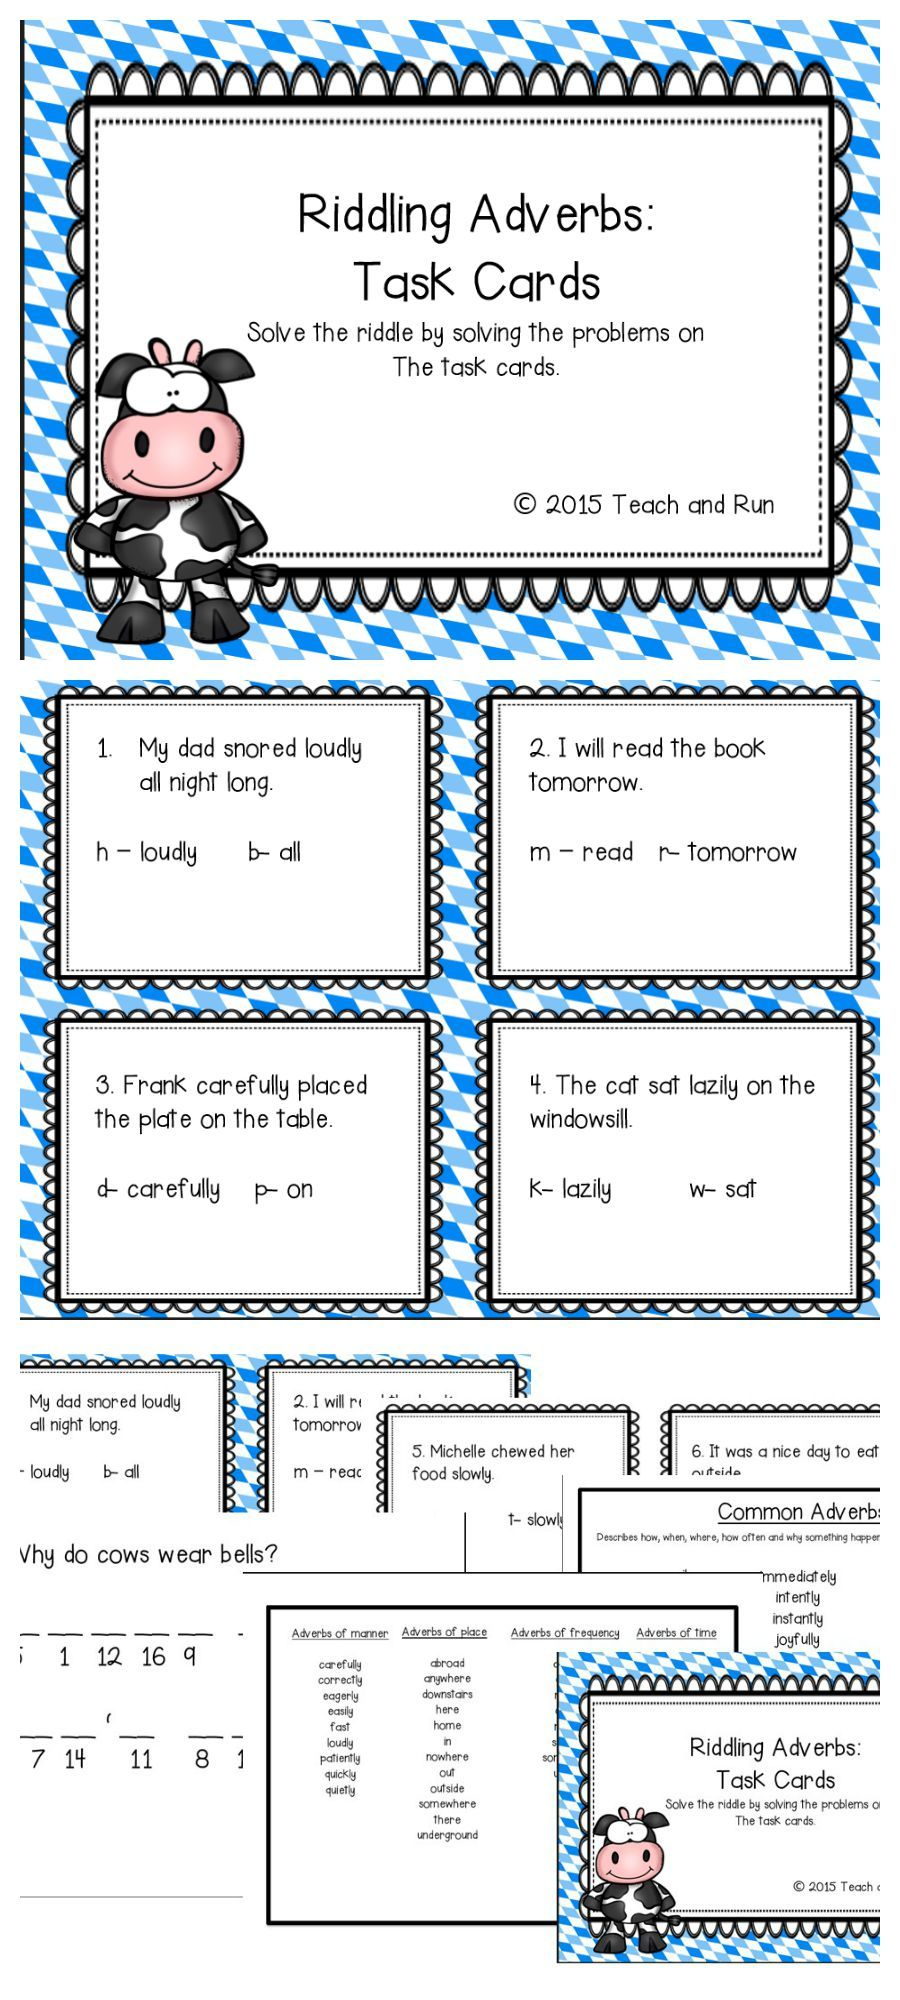 Adverbs Riddling Task Cards Elementary Teaching Resources Task